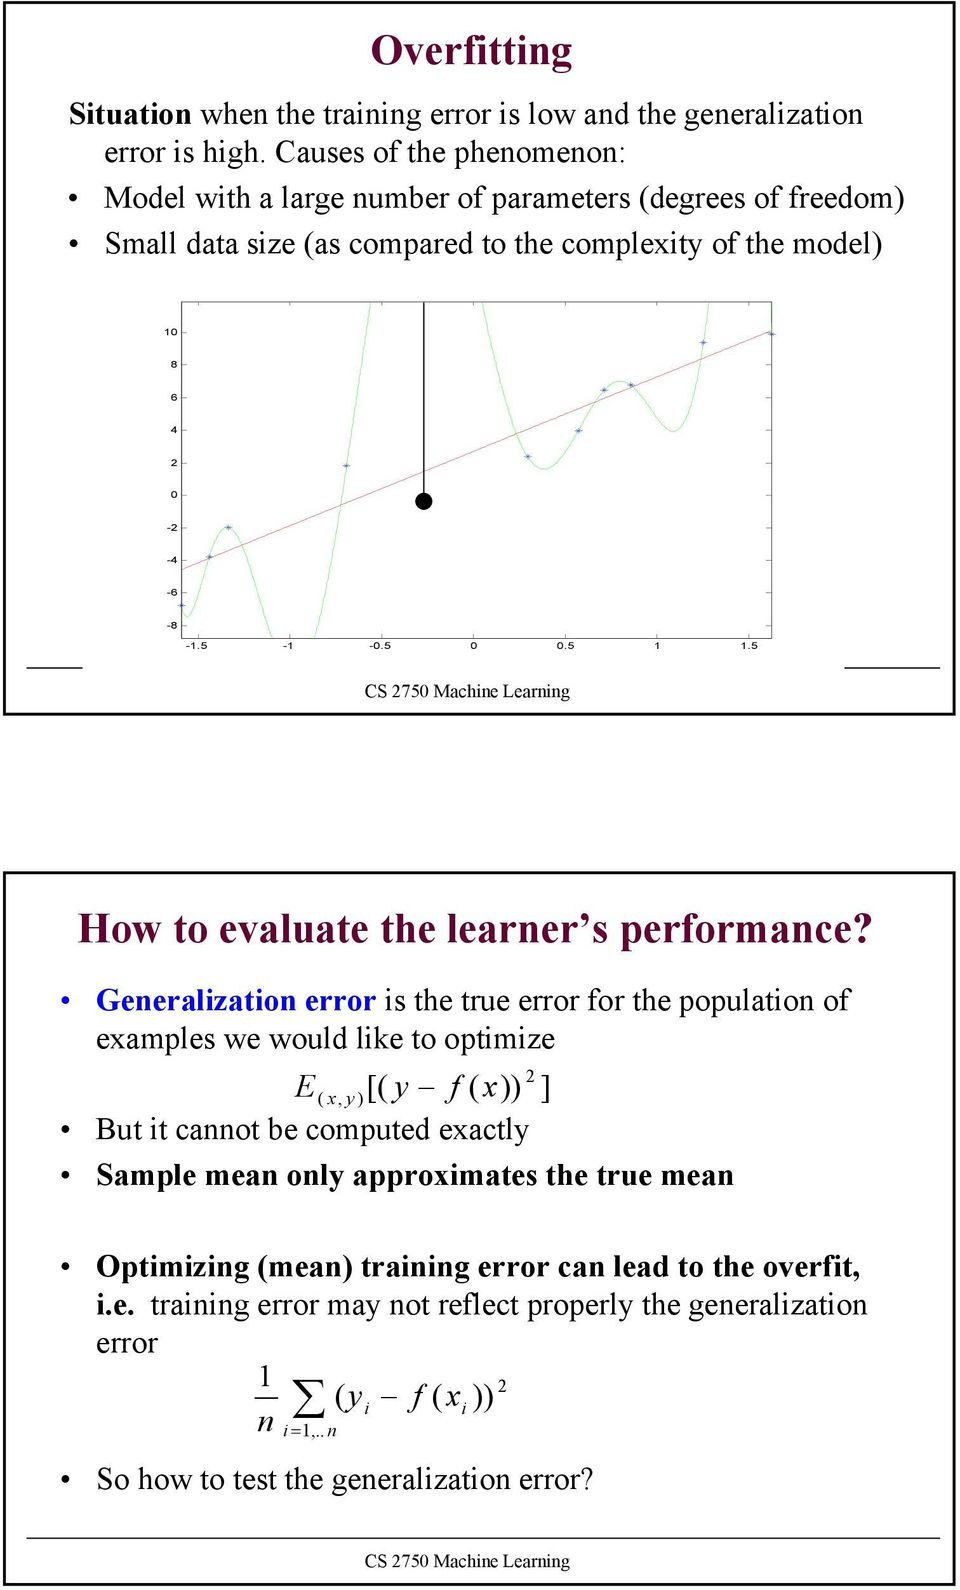 - -.5.5.5 How to evaluate the learner s performance?